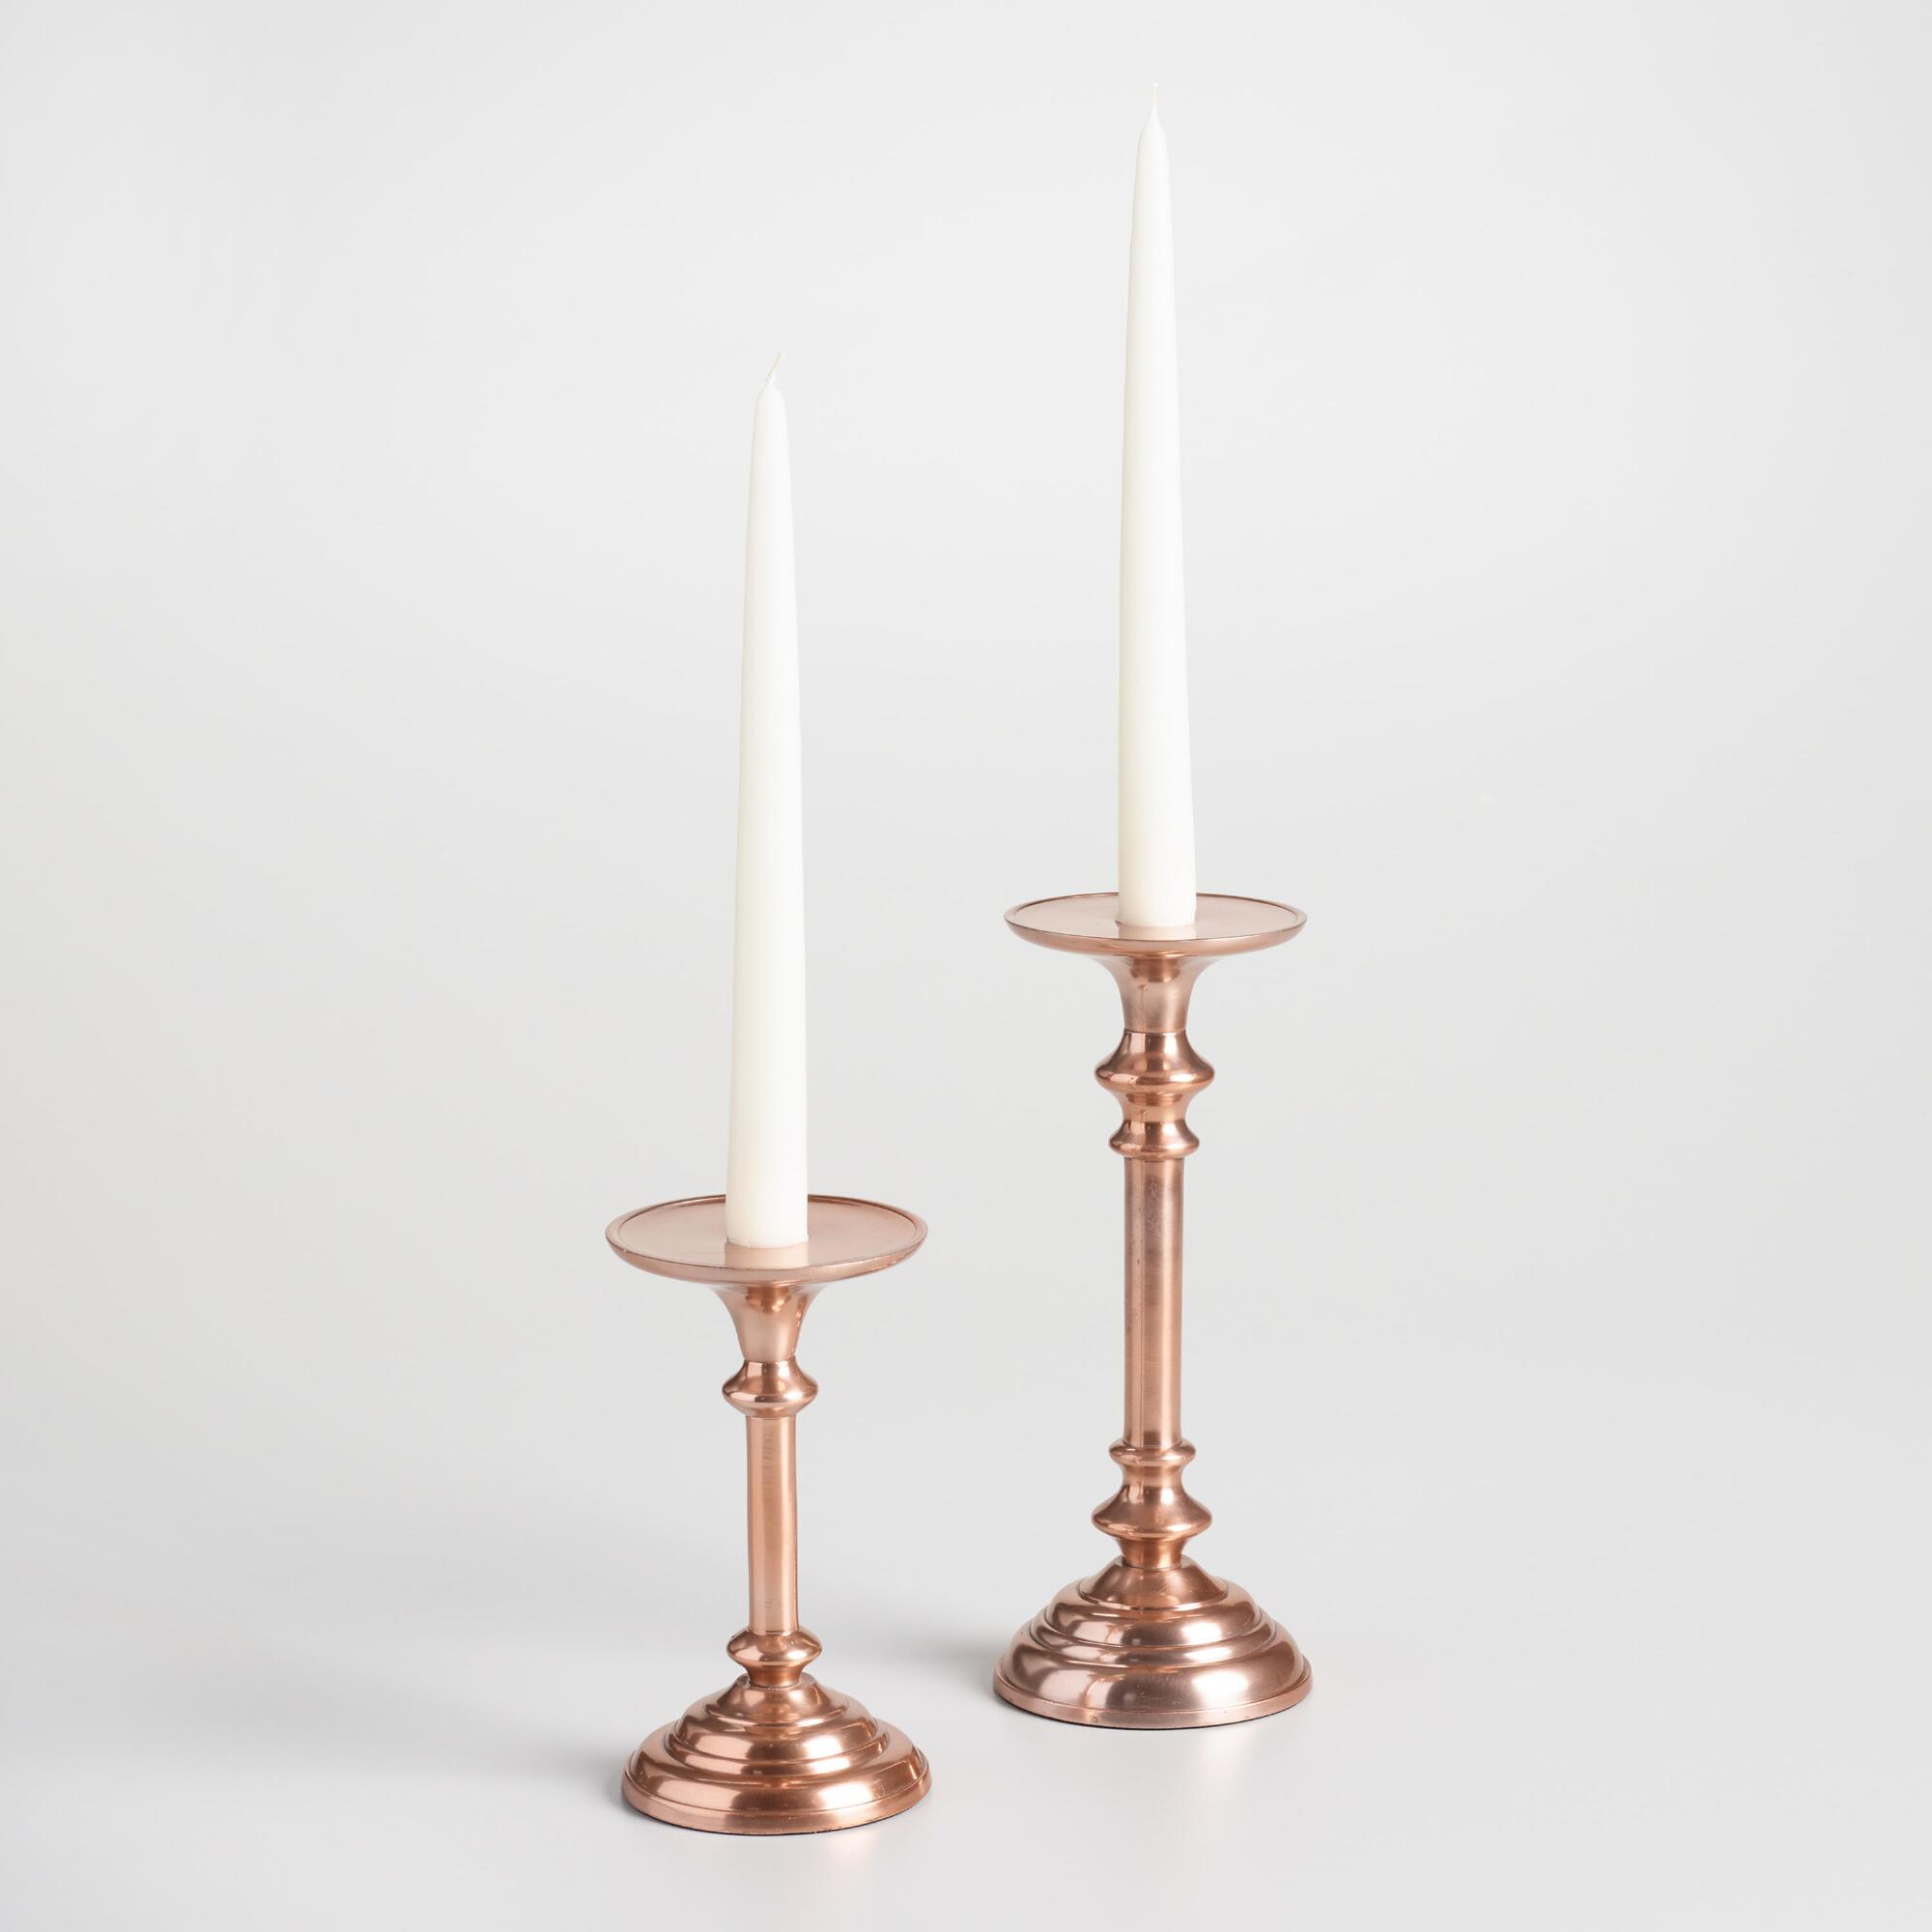 Copper Taper or Pillar Candleholder - Small by World Market Small